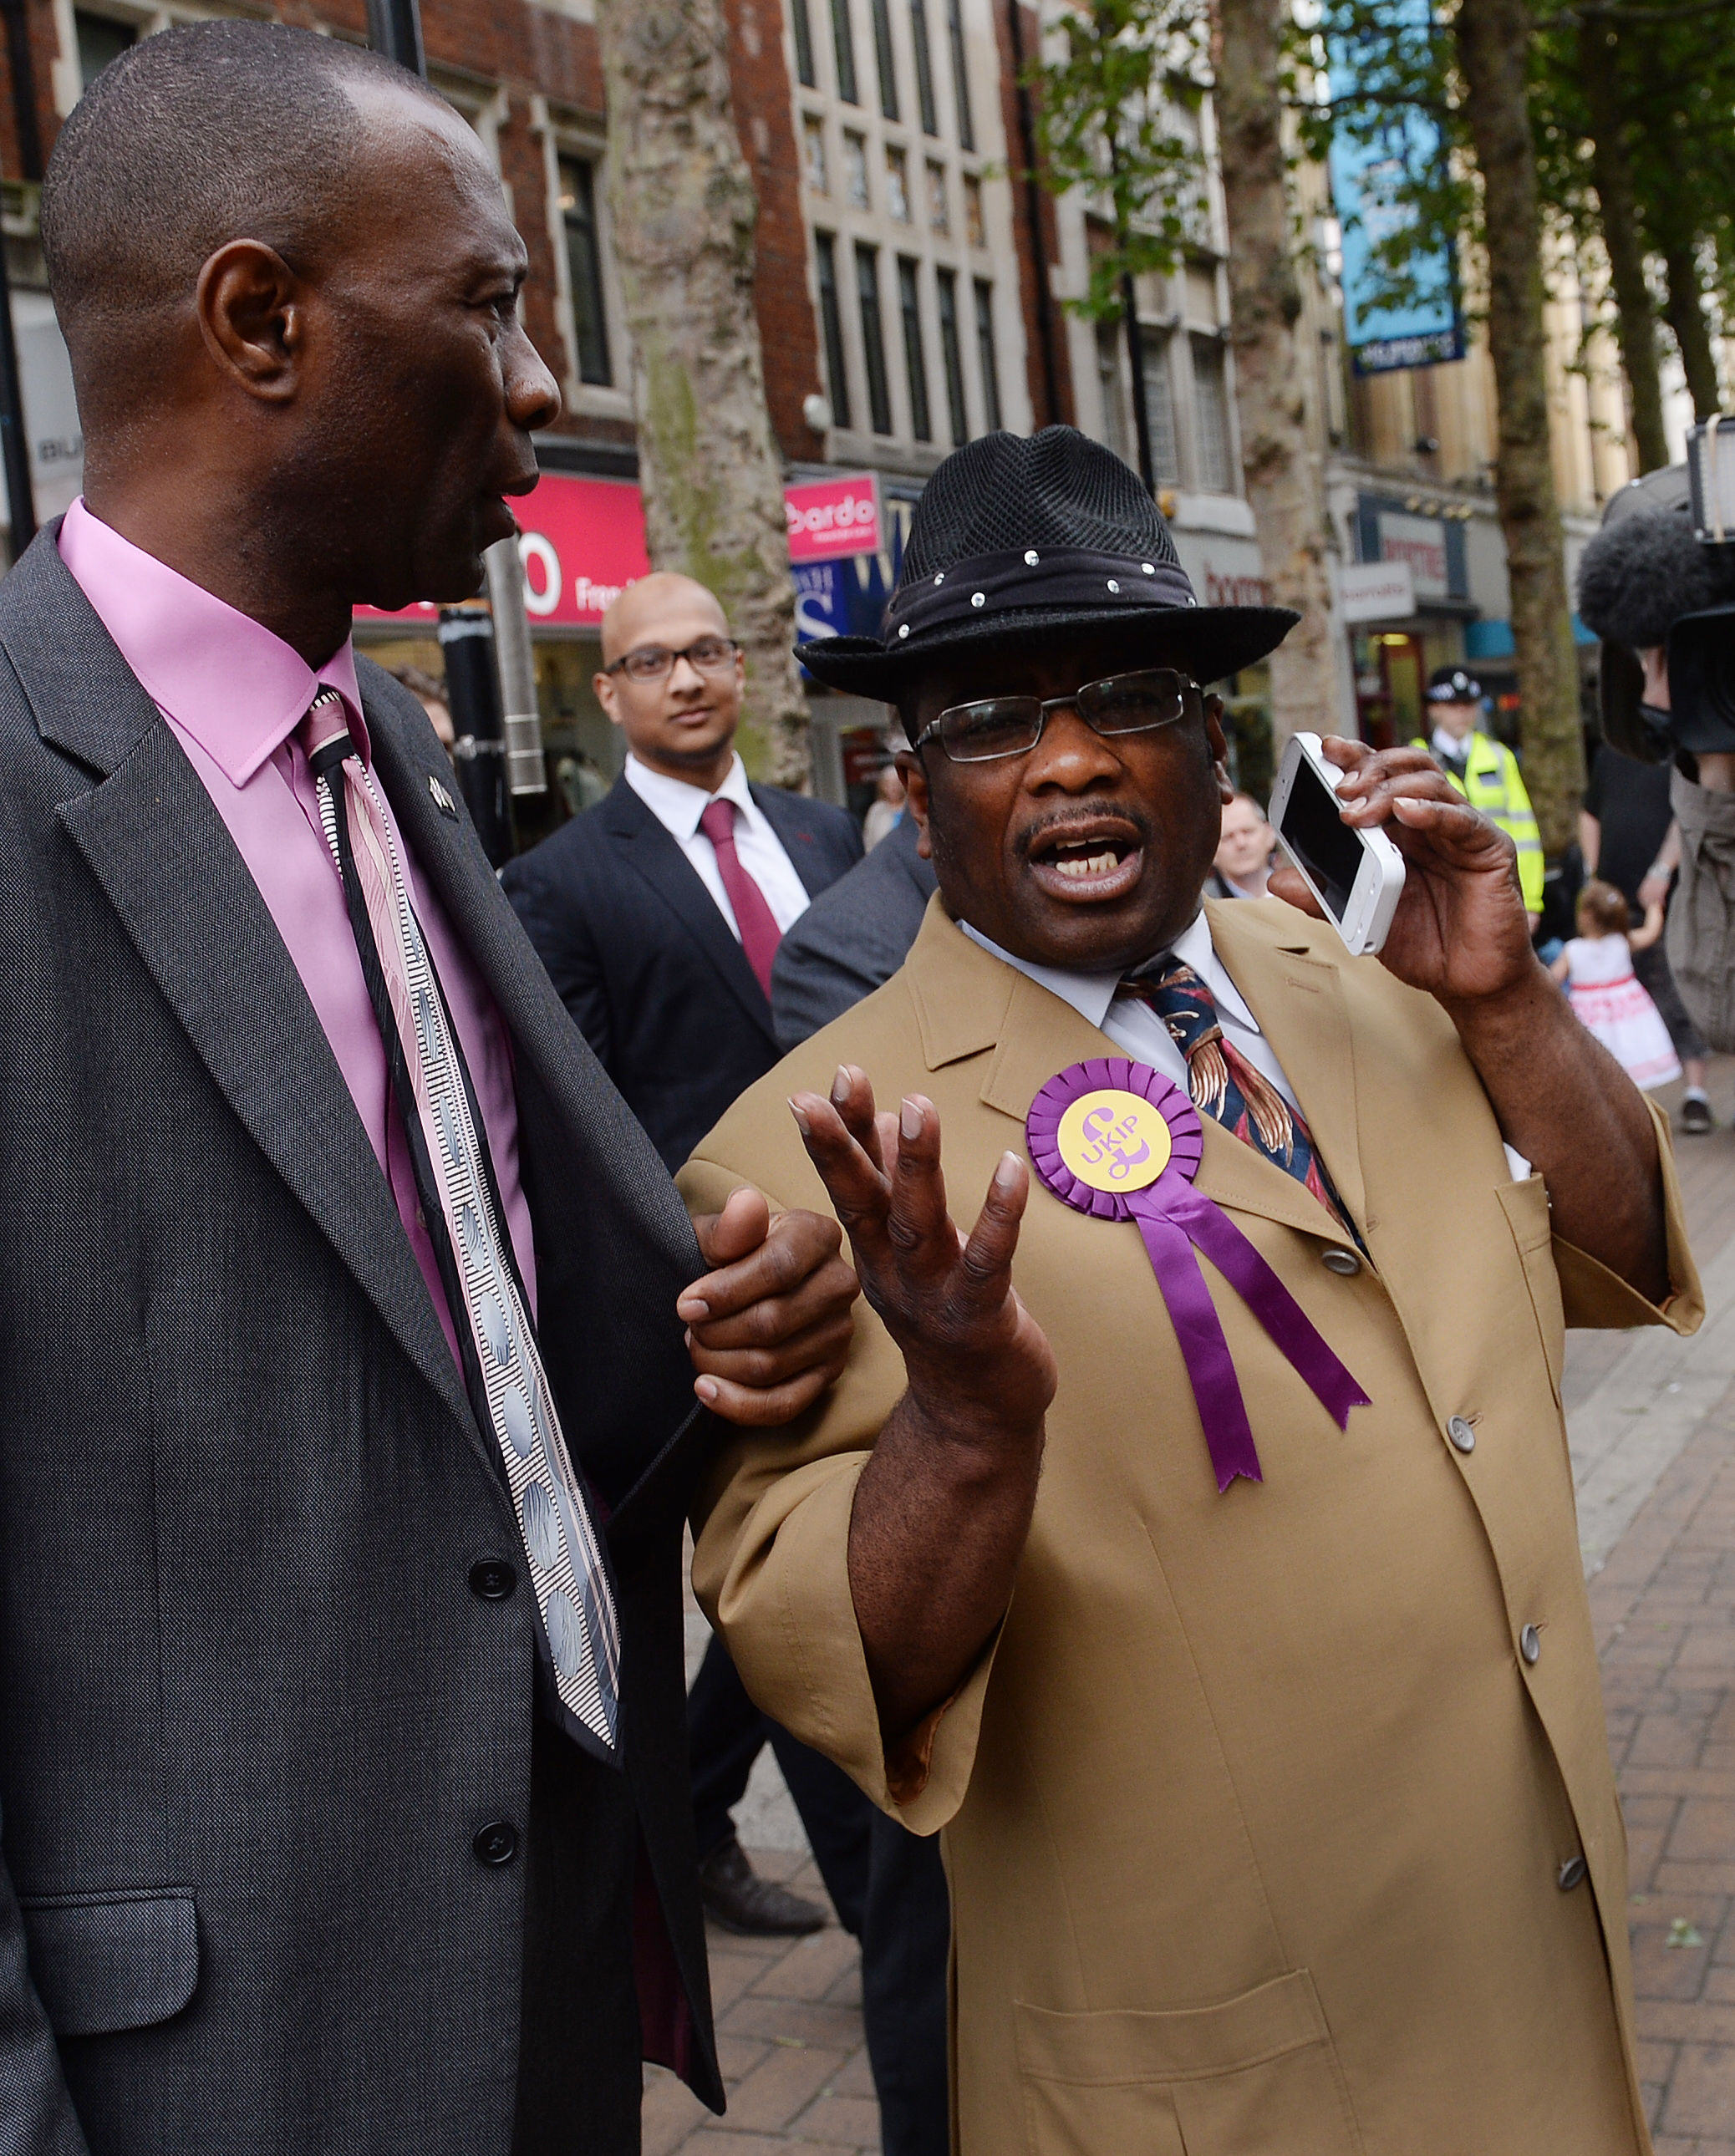 UNILAD Stefan RousseauPA Images40172 Prominent Black UKIP Member Quits Party Due To Racial Discrimination